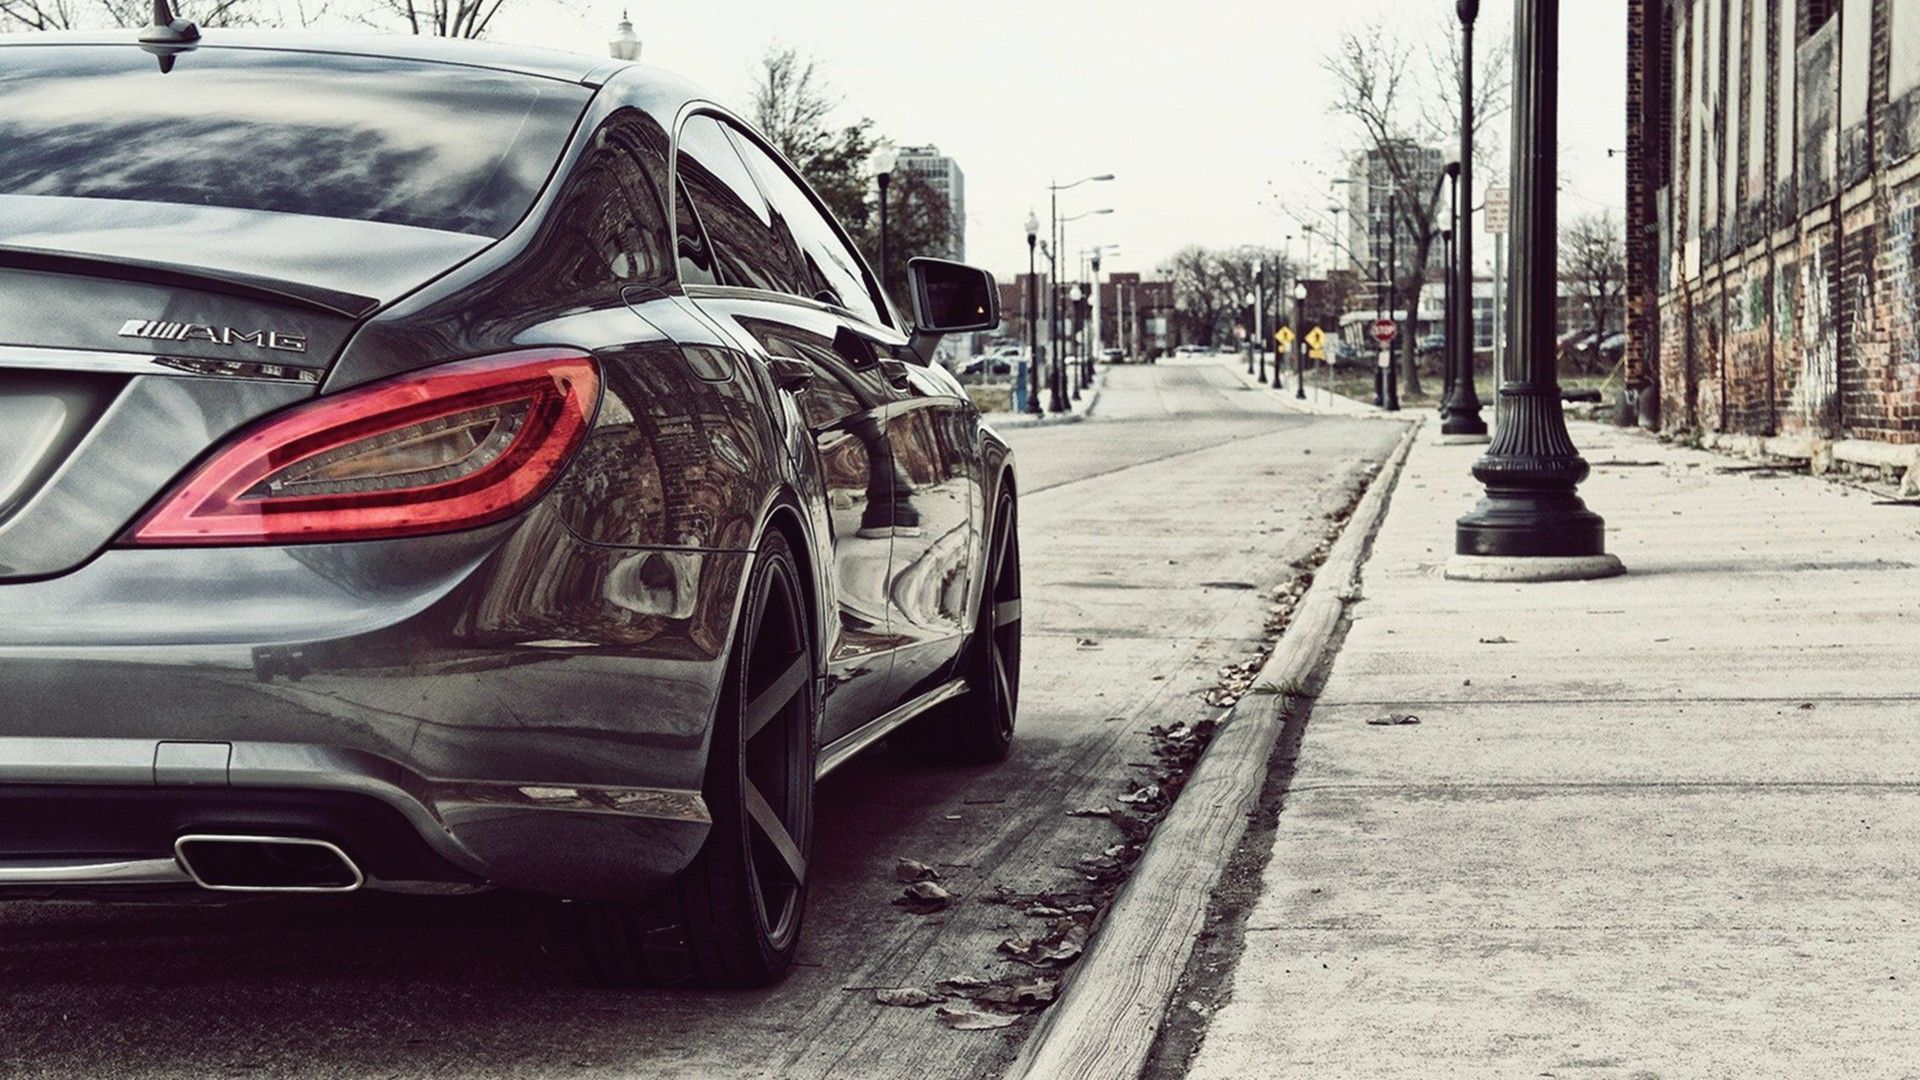 Mercedes Benz Cls 63 Amg 1920x1080 Wallpaper With Images